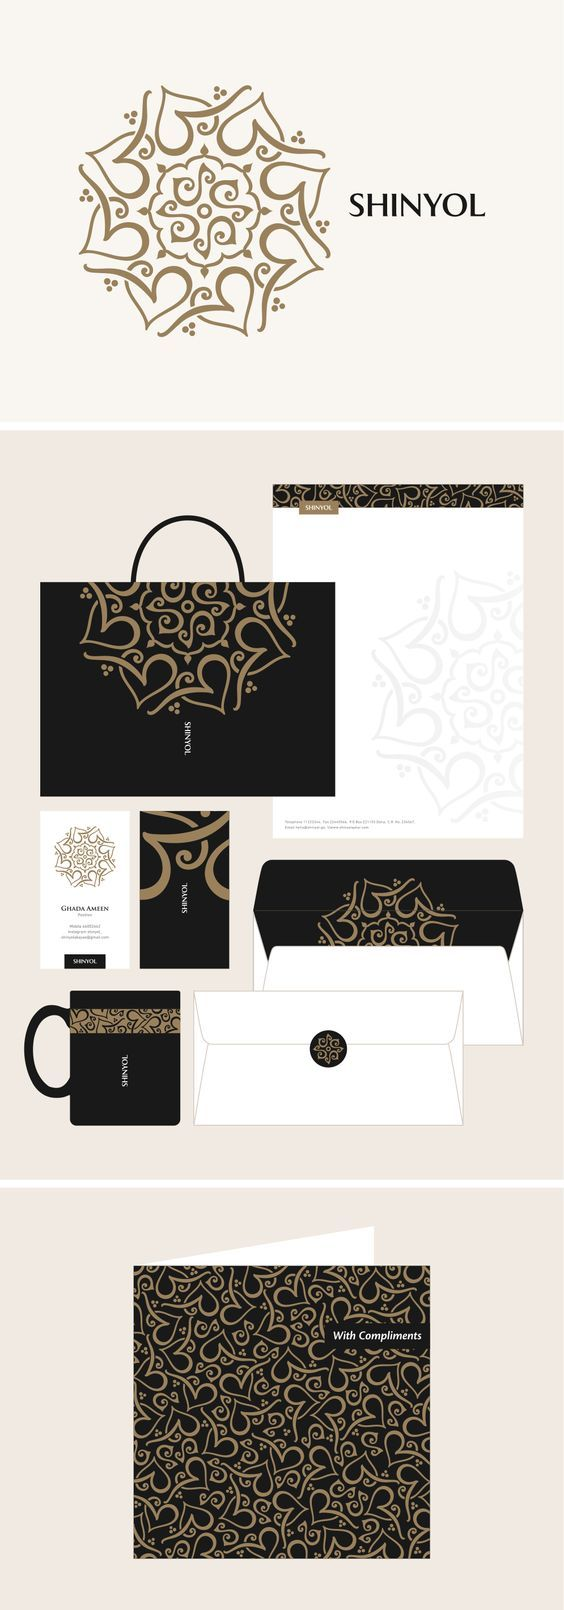 Arabesque style Arabic logo/identity design for an Abaya boutique in Qatar, by Khawar Bilal:                                                                                                                                                     More